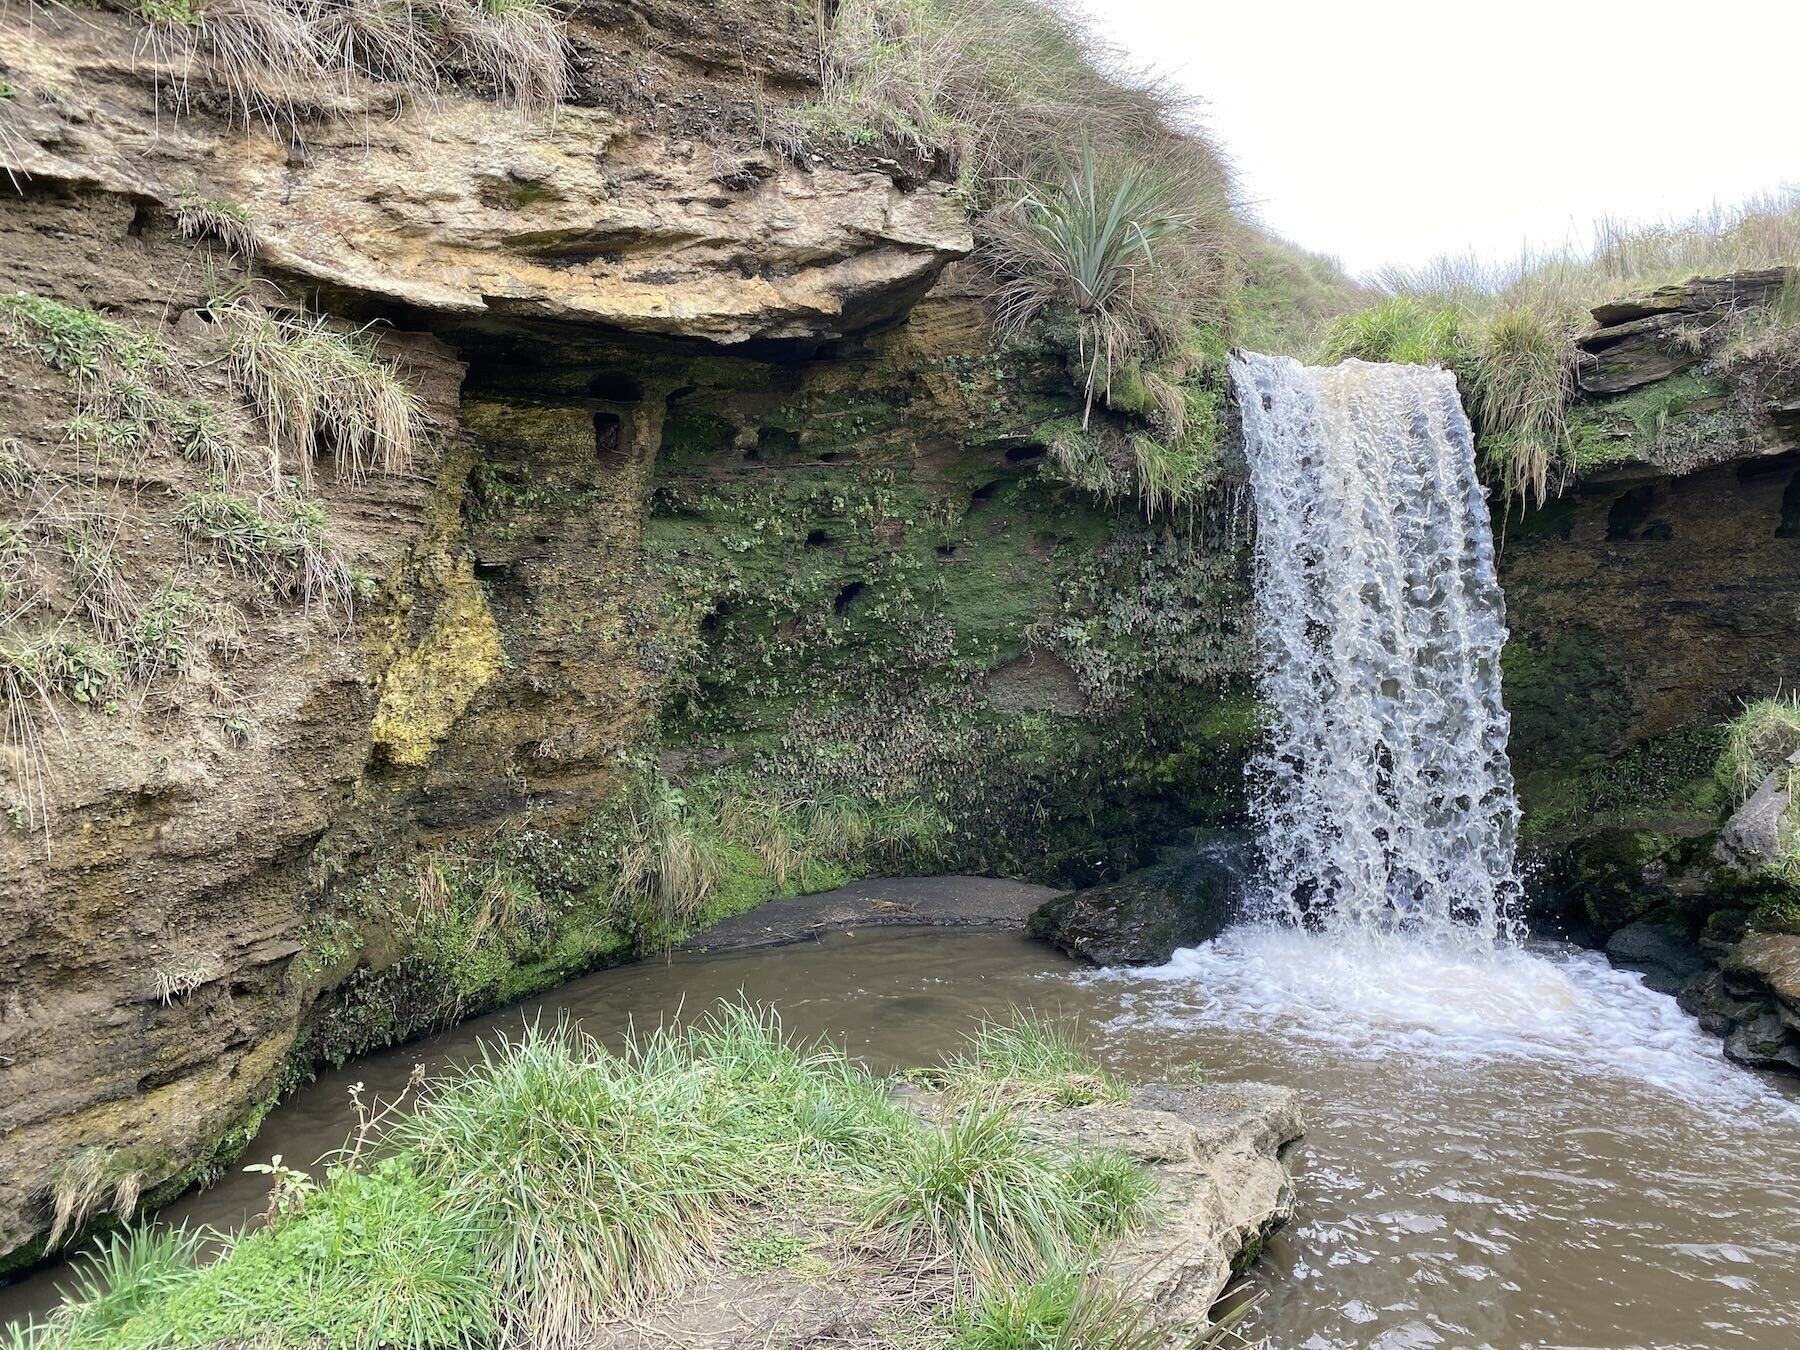 The upper waterfall, about 4 metres high.